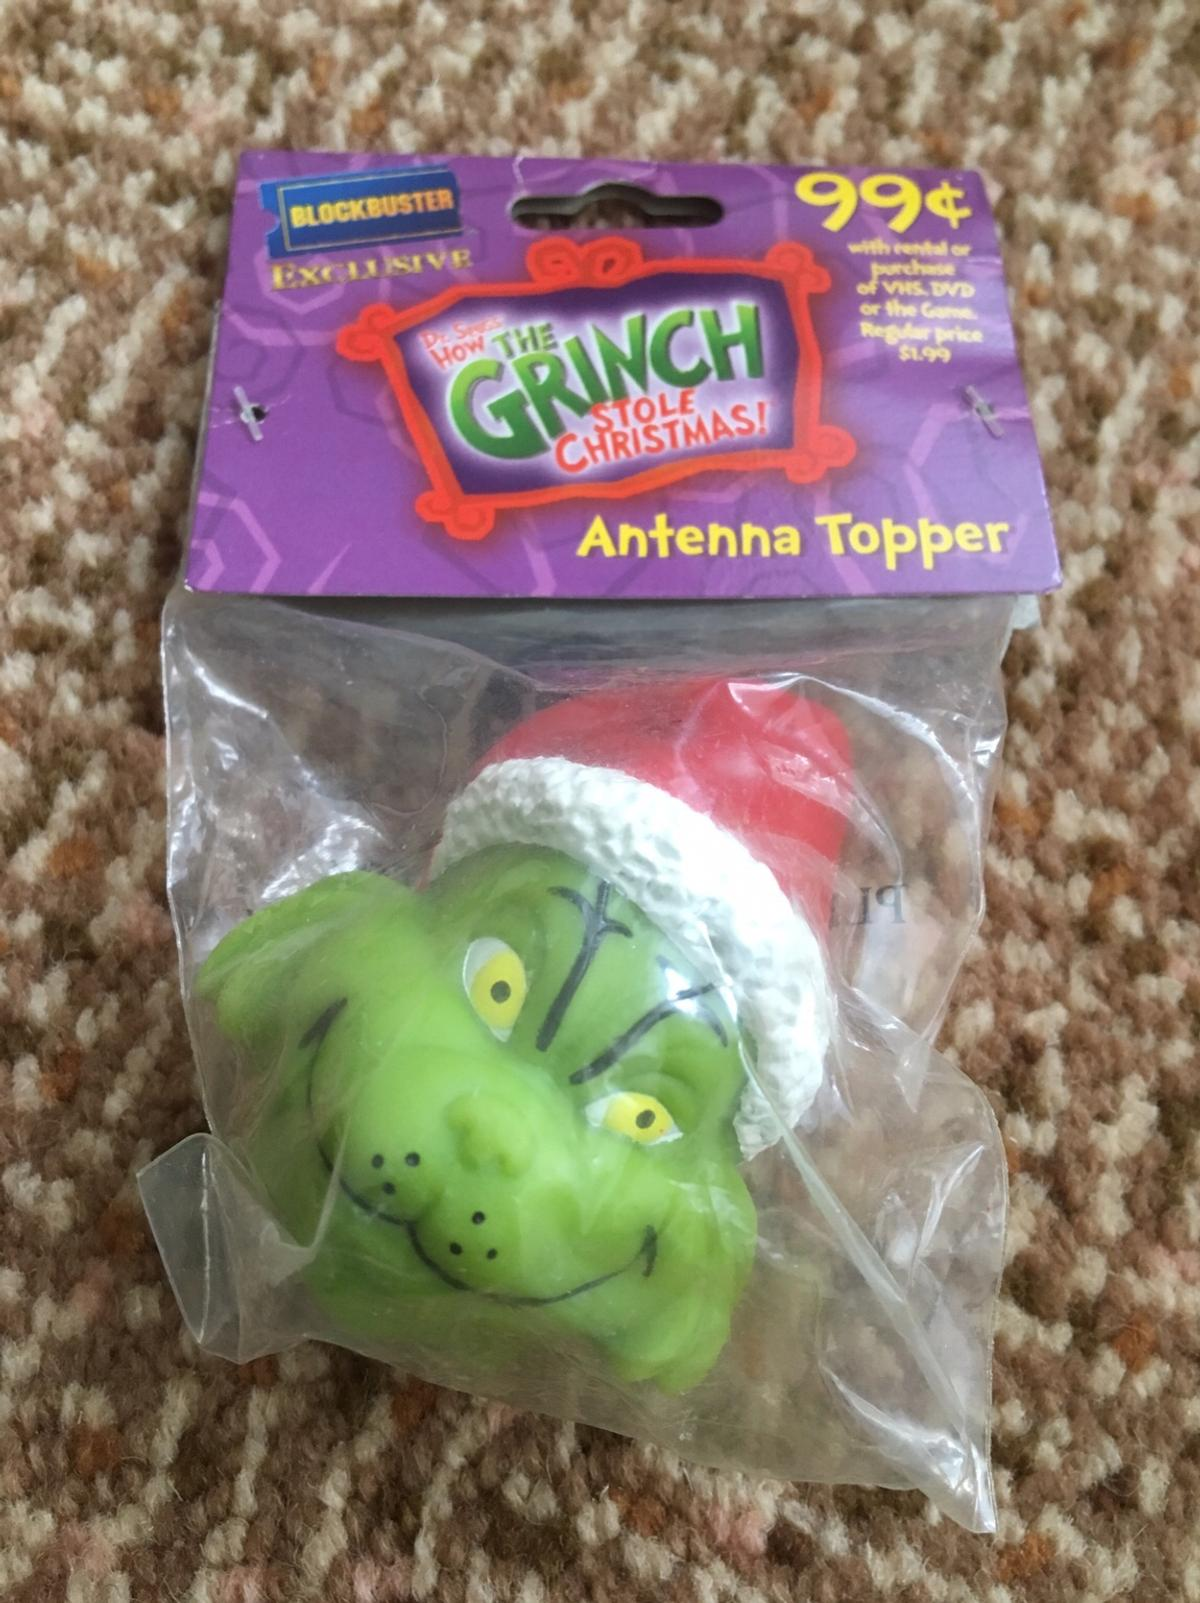 Very Rare The Grinch Christmas Antenna Topper In Fy2 Bispham For